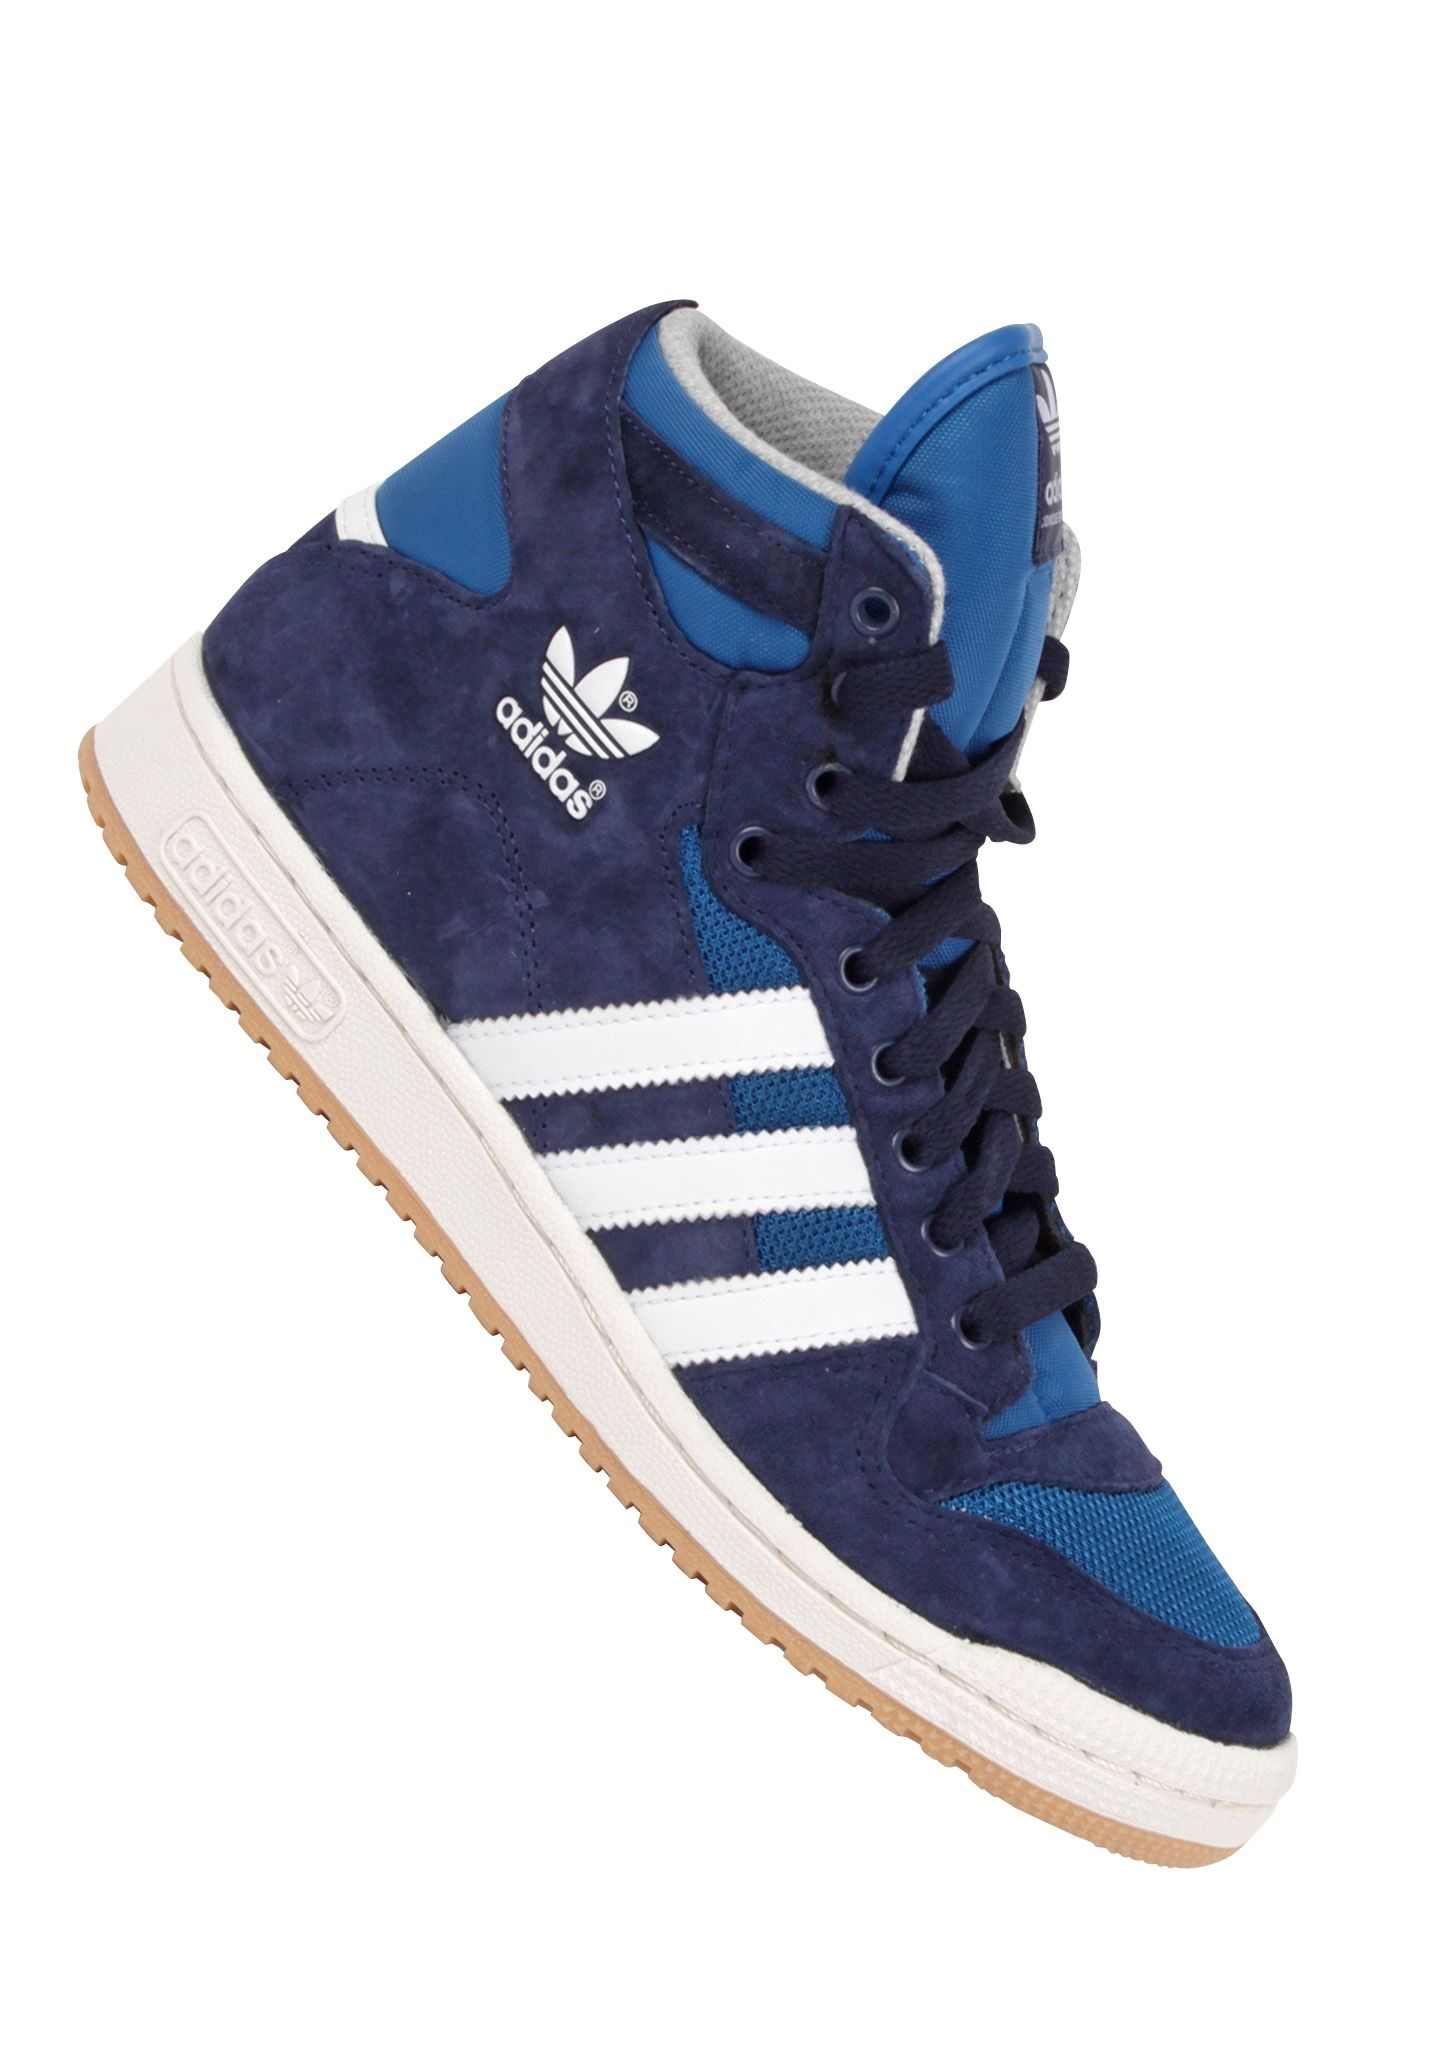 sports shoes aab4f 01899 ADIDAS Decade Og Mid - Sneakers for Men - Blue - Planet Spor